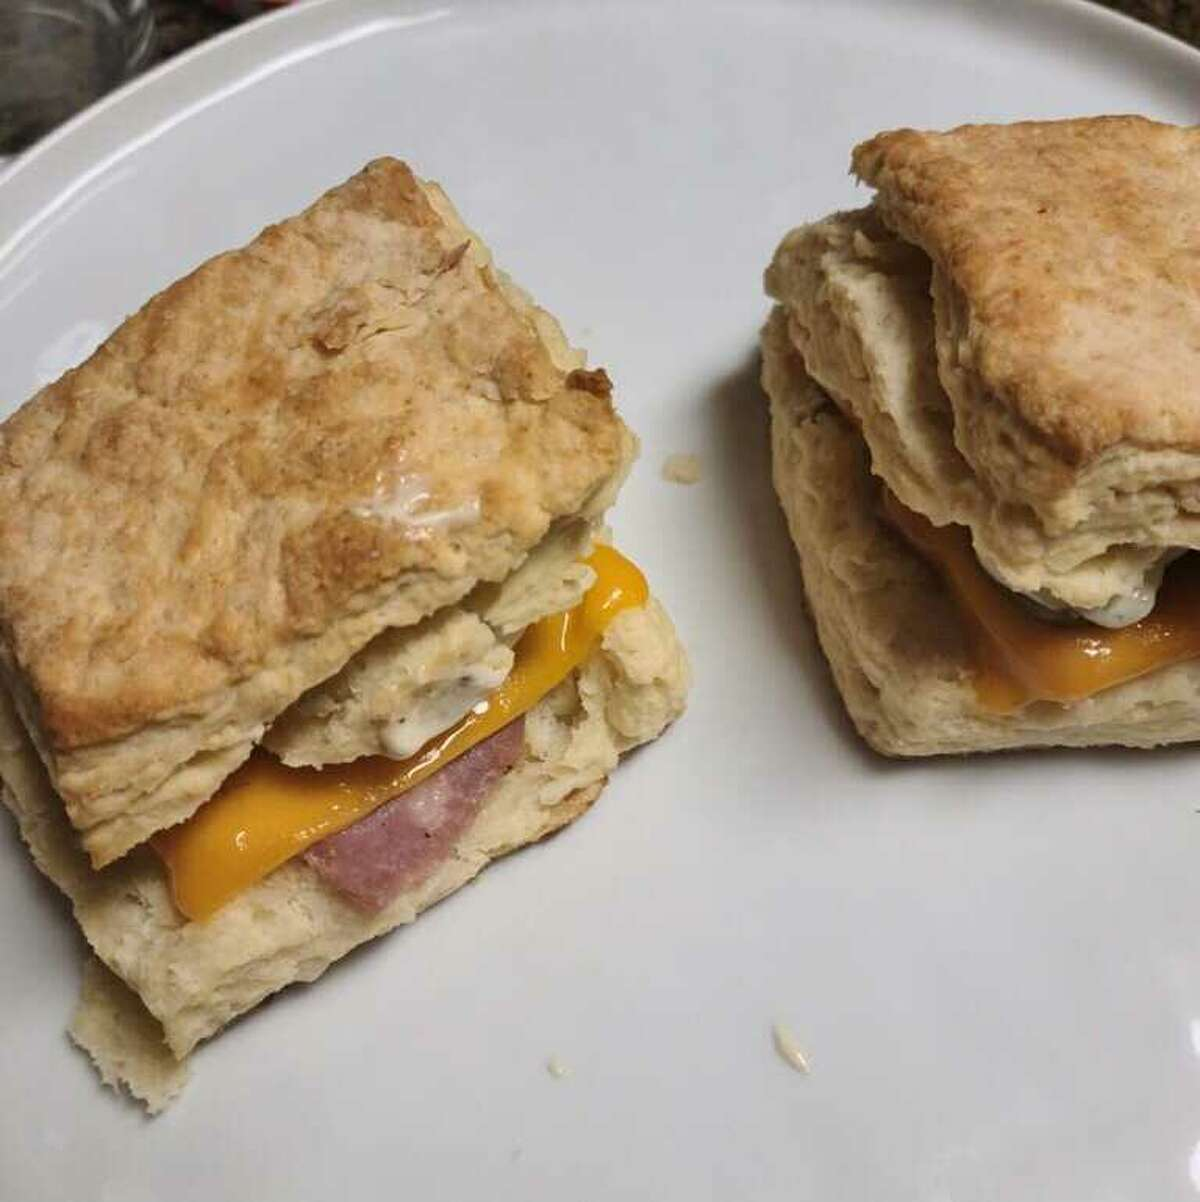 My boyfriend and I made biscuit sandwiches with country ham, cheese and pickles.